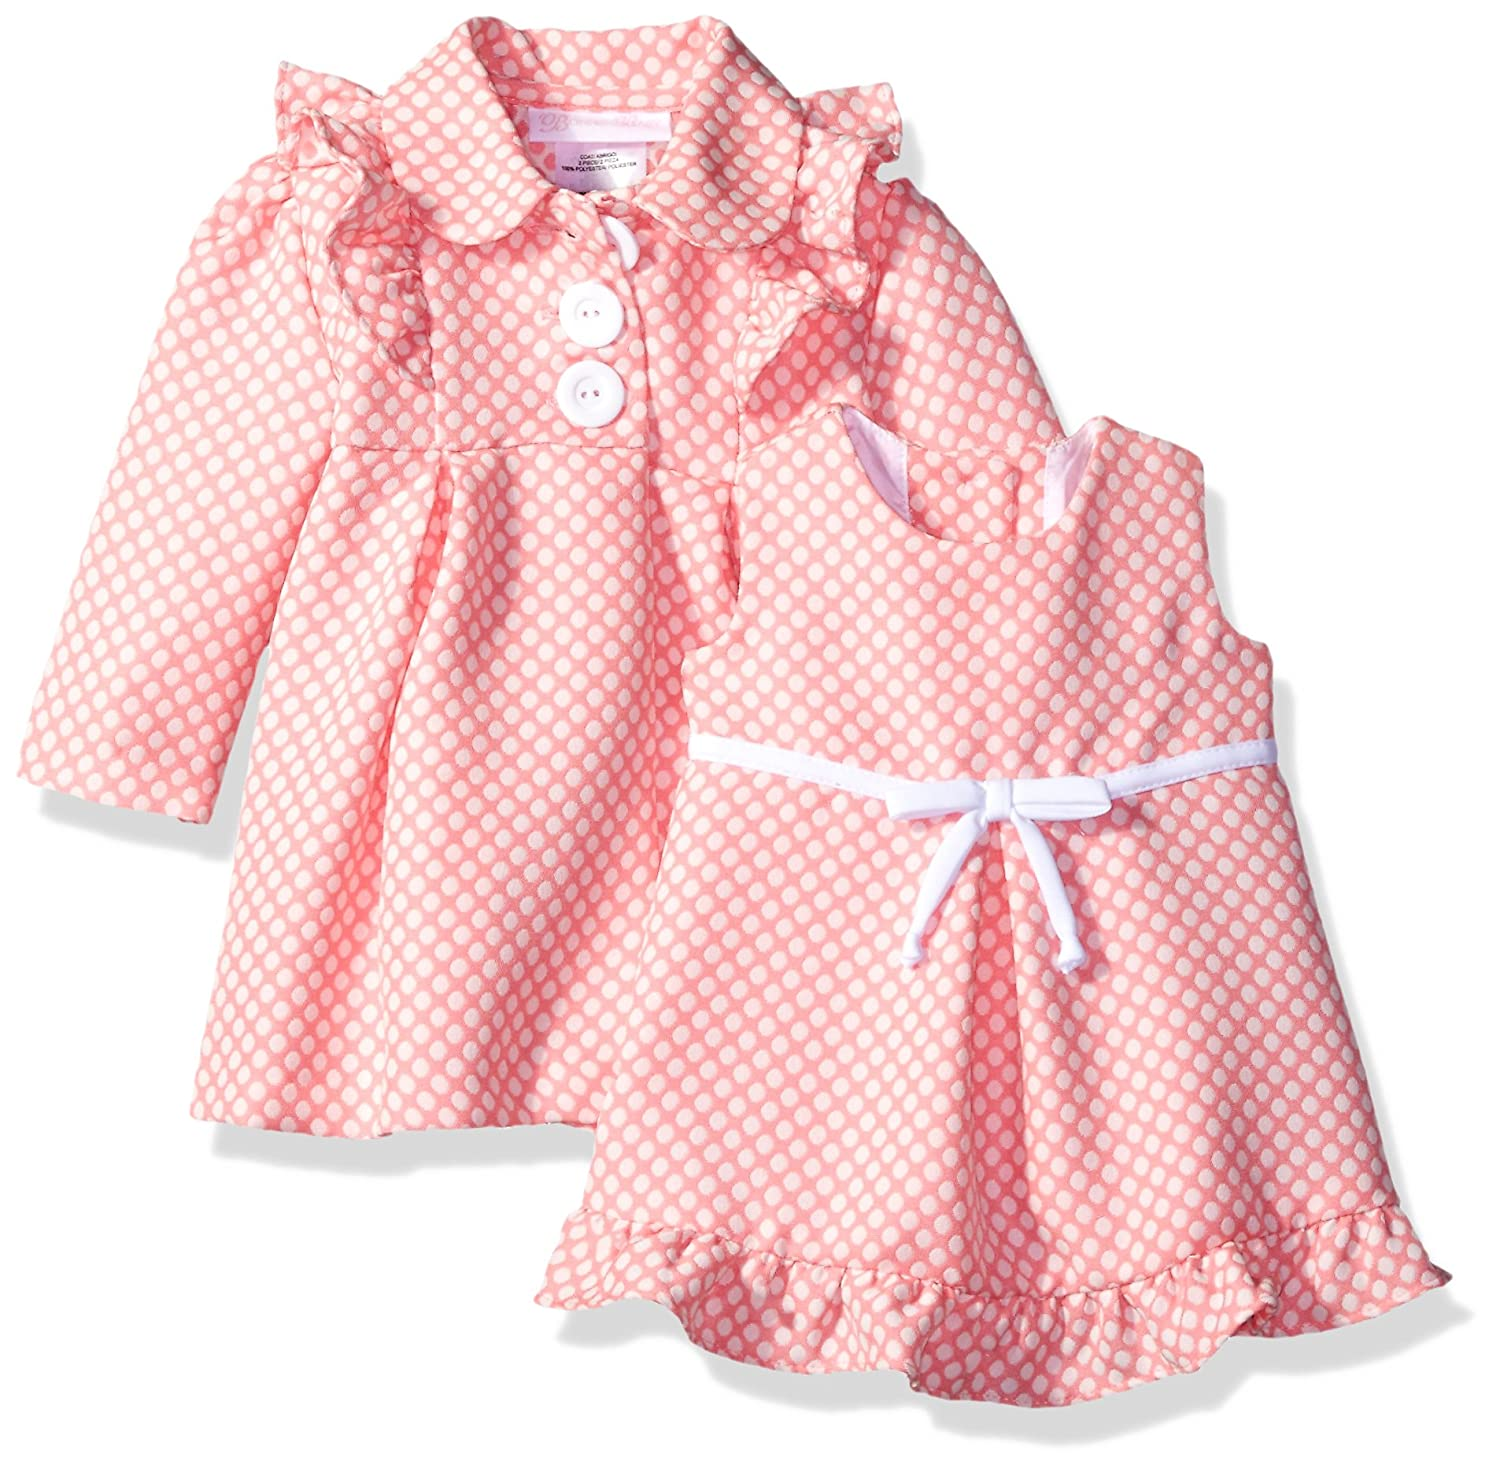 0c00d8216 Baby girl dress and coat set. Bonnie Baby Dress, maker of Bonnie Jean  products, has made fashionable, high quality, affordable and age  appropriate dresses ...